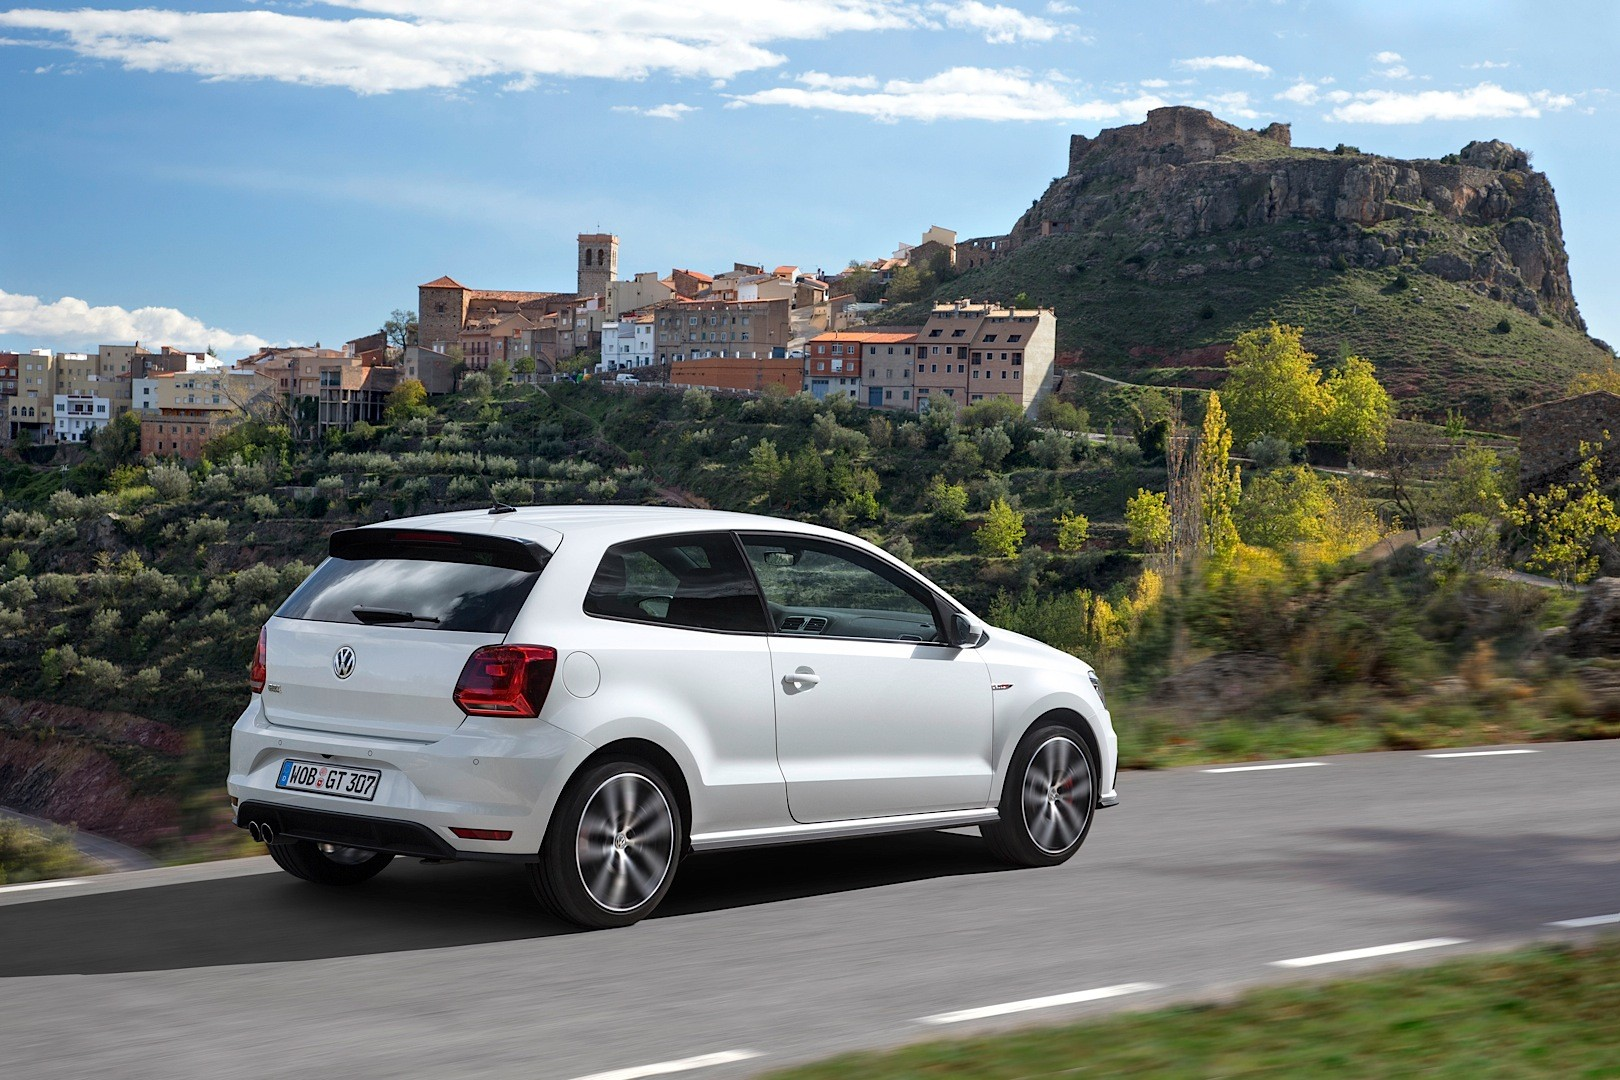 2015 volkswagen polo gti 6r facelift new photos and details released autoevolution. Black Bedroom Furniture Sets. Home Design Ideas